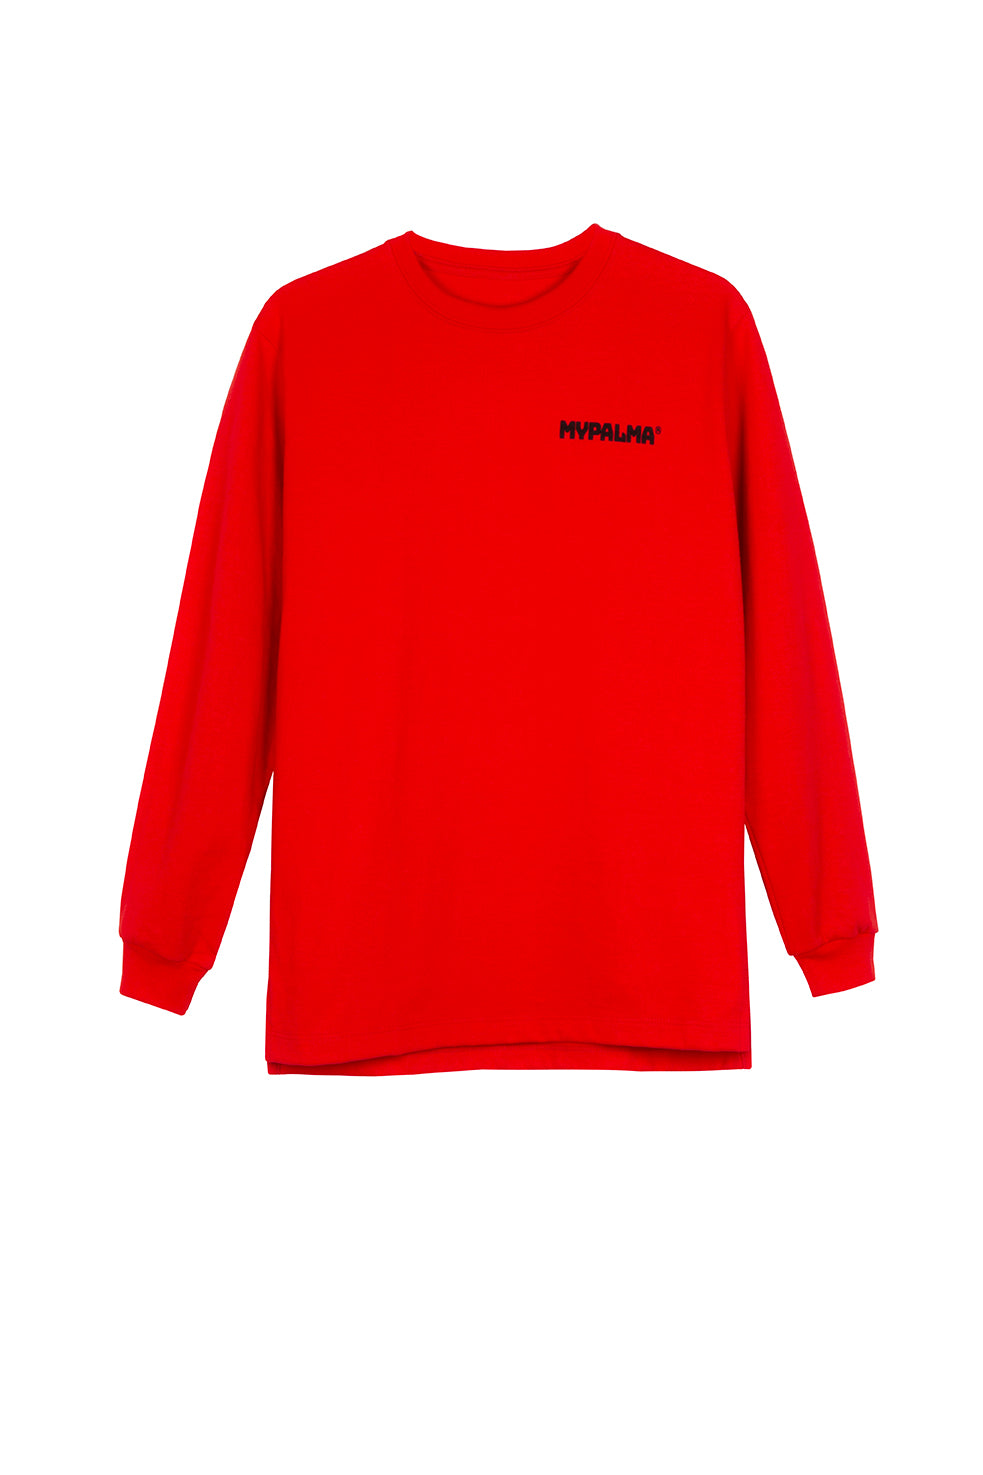 LOGO RED LONG SLEEVE